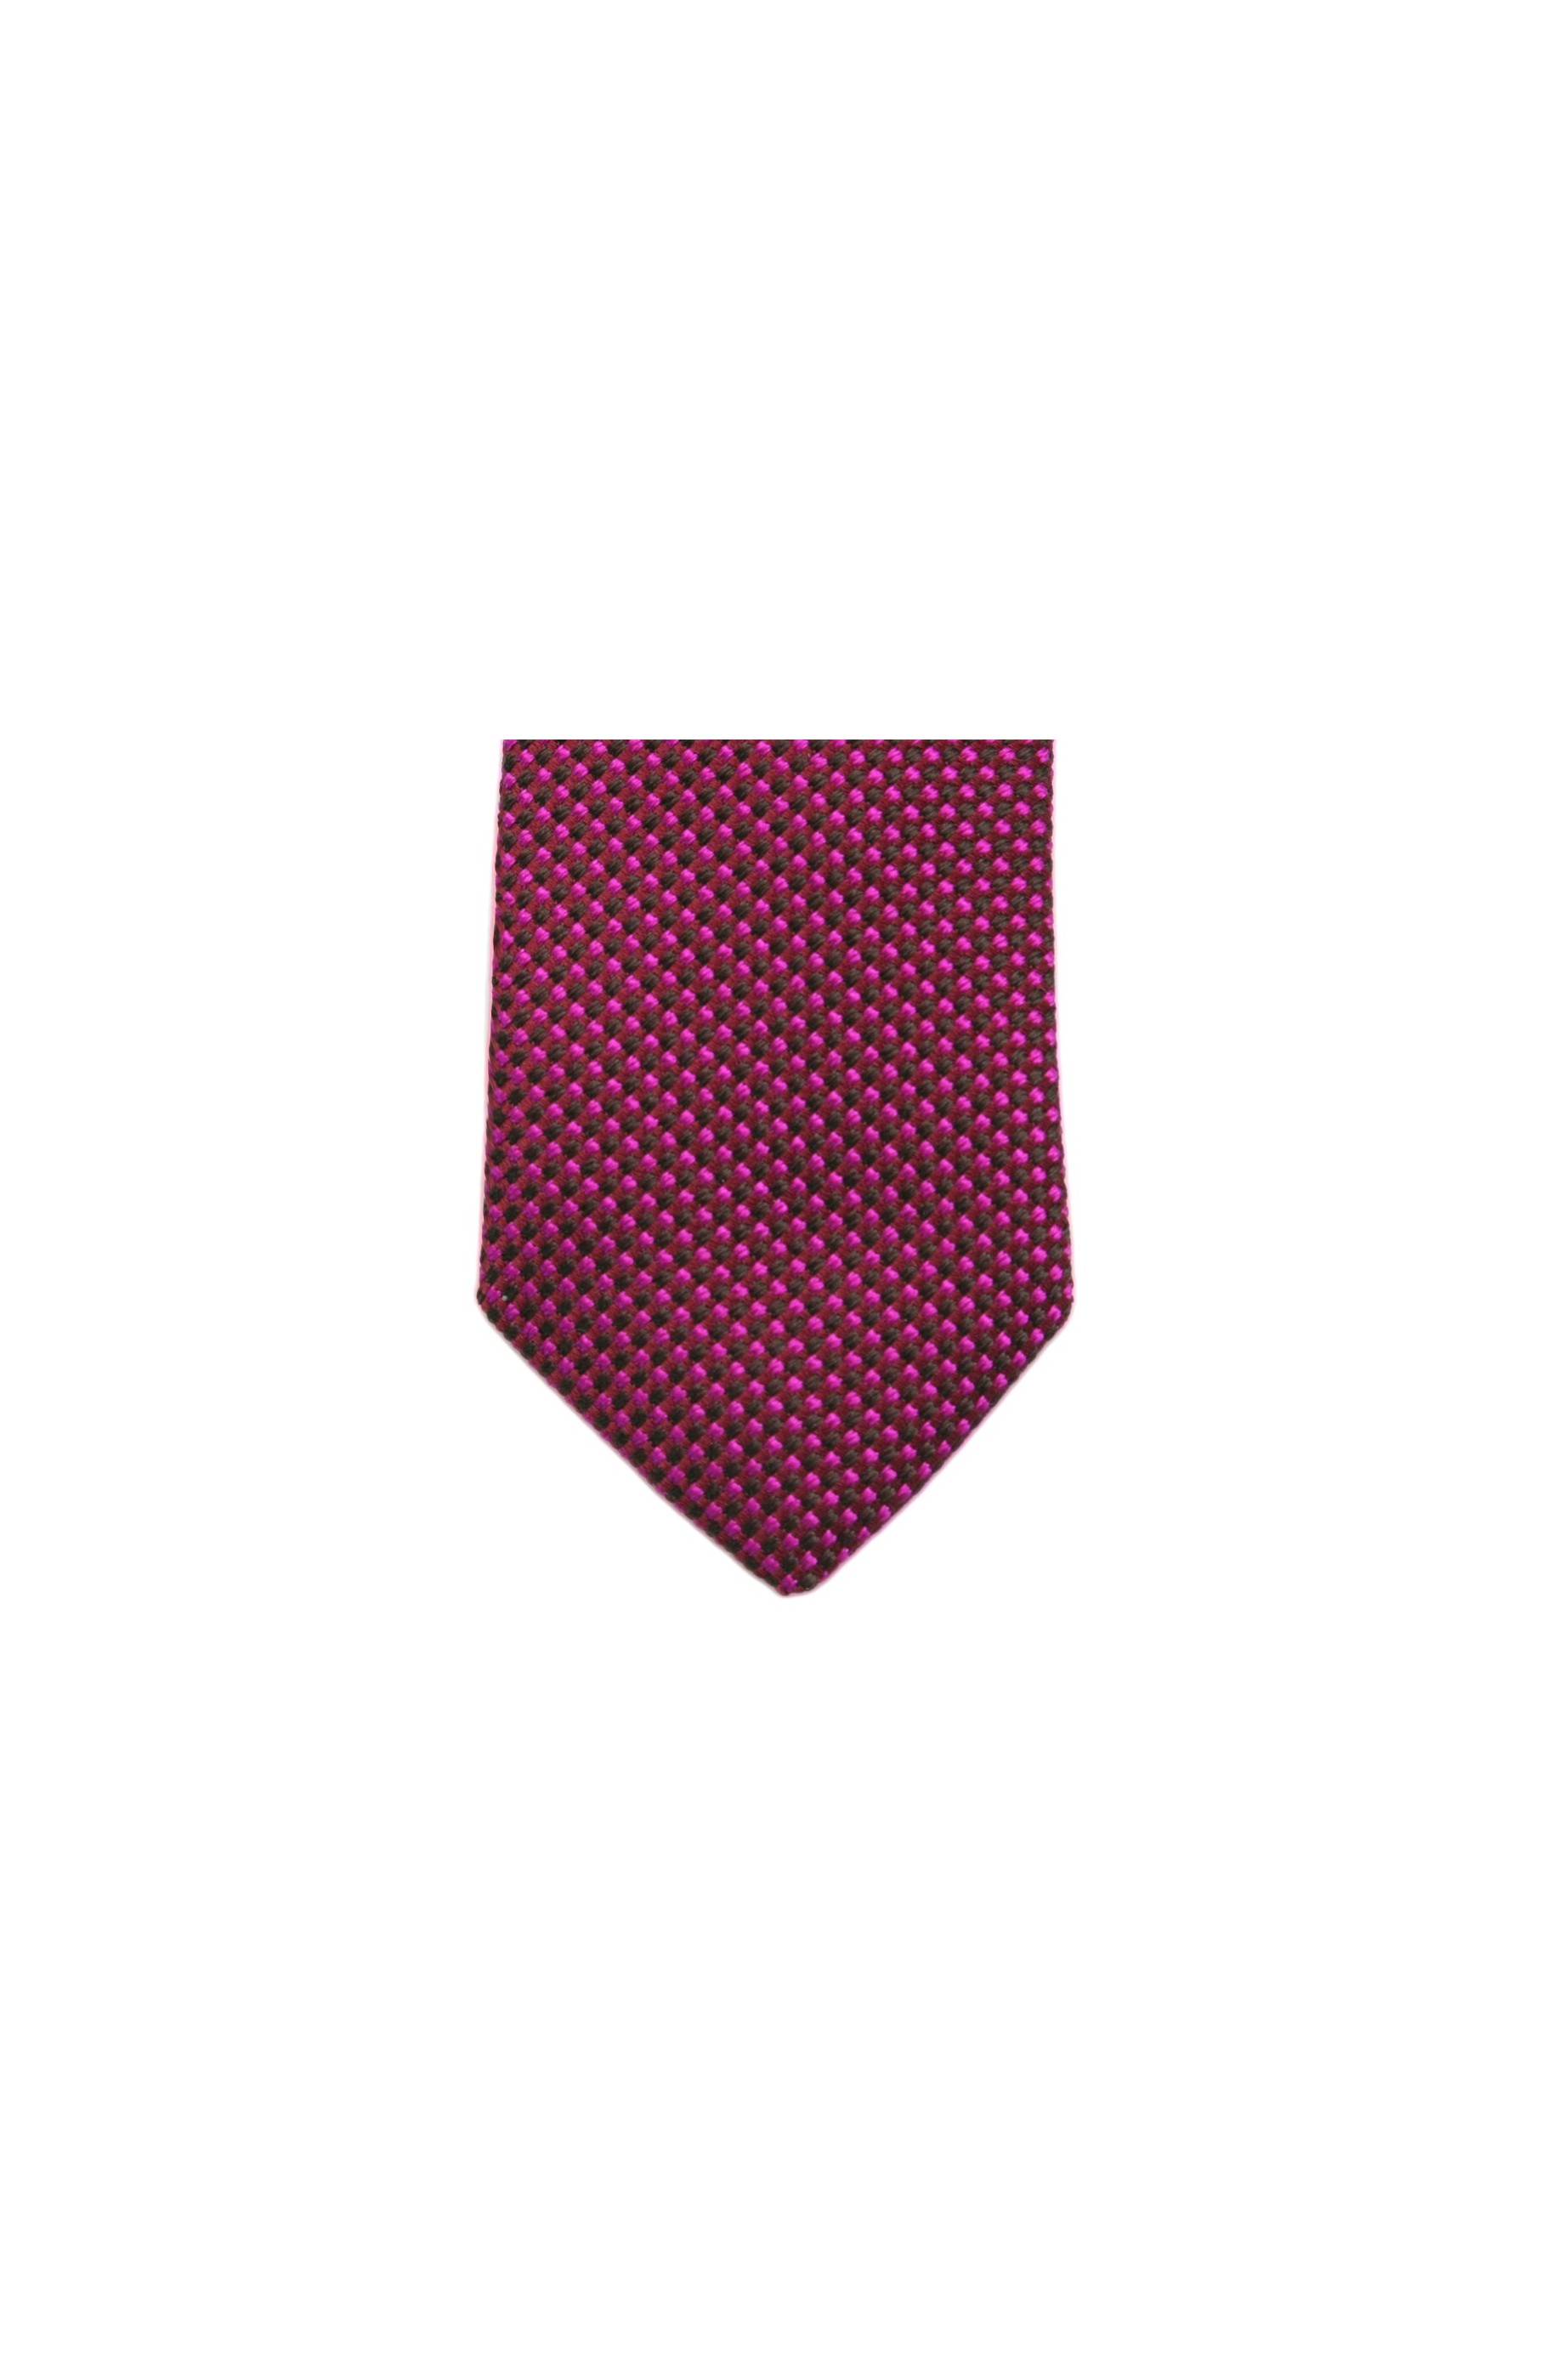 Majesté Couture Paris: Fuchsia woven tie on chocolate shades | Accessories -  Hiphunters Shop